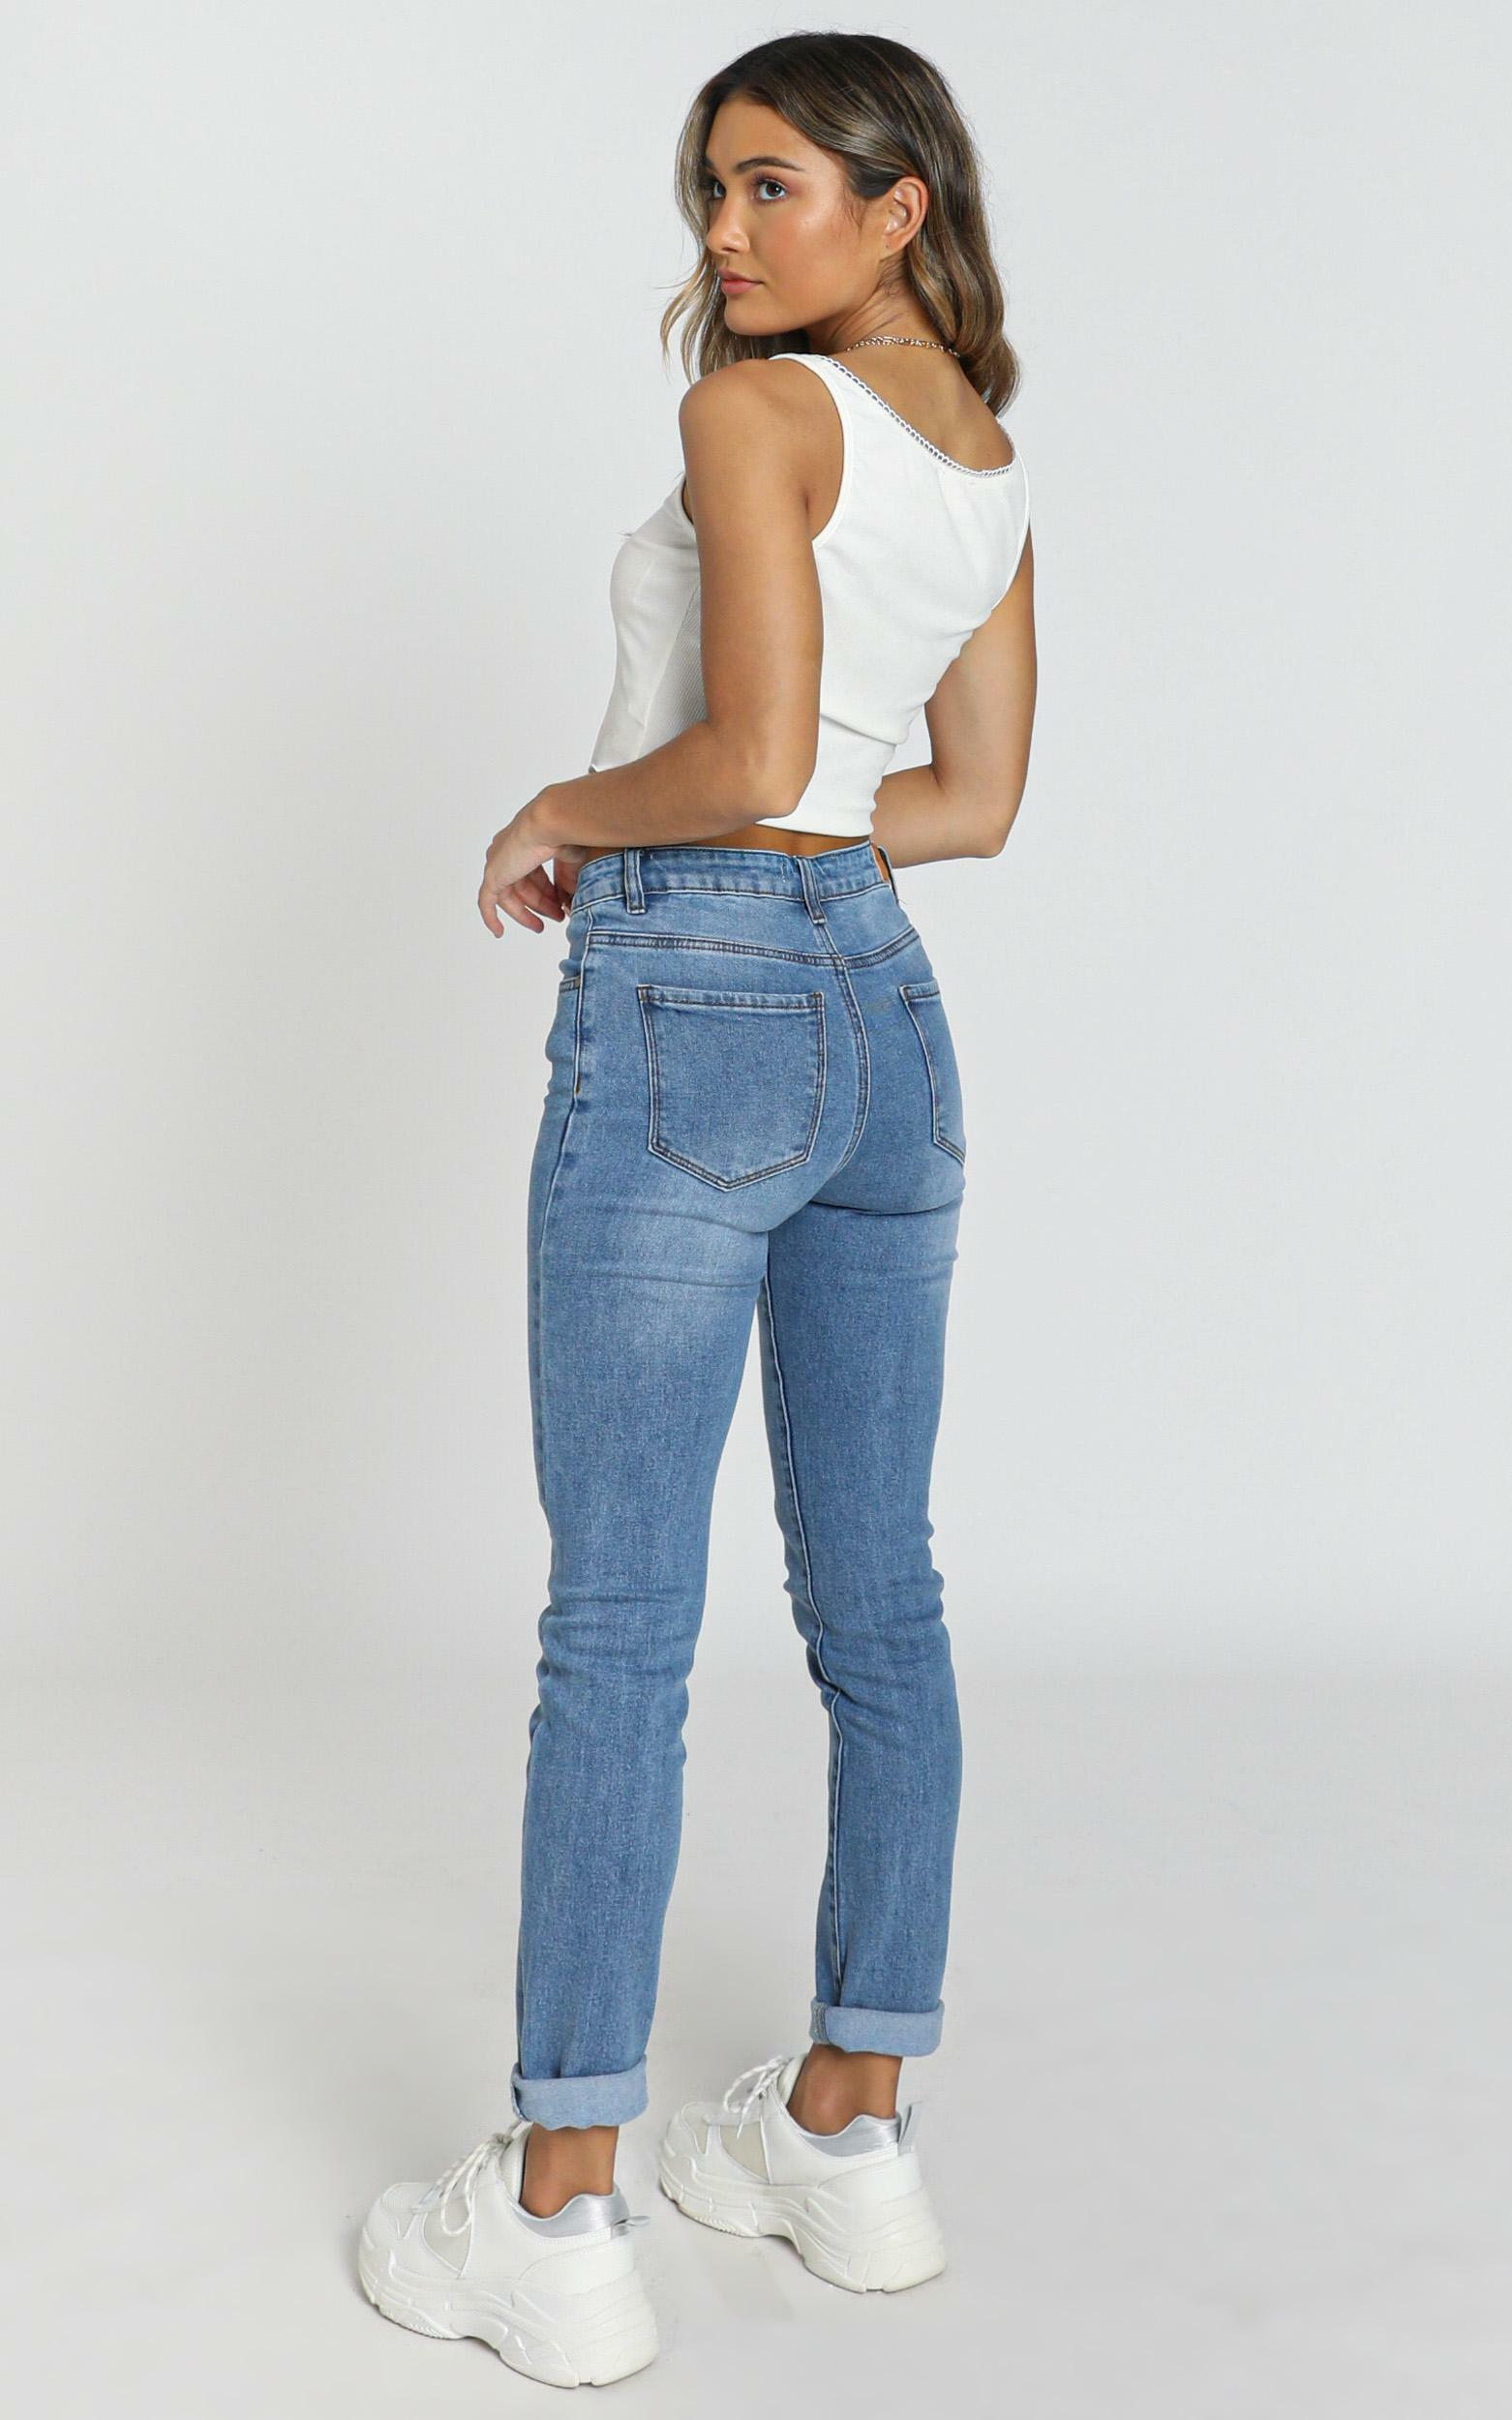 Fabia Jeans in mid wash - 6 (XS), Blue, hi-res image number null